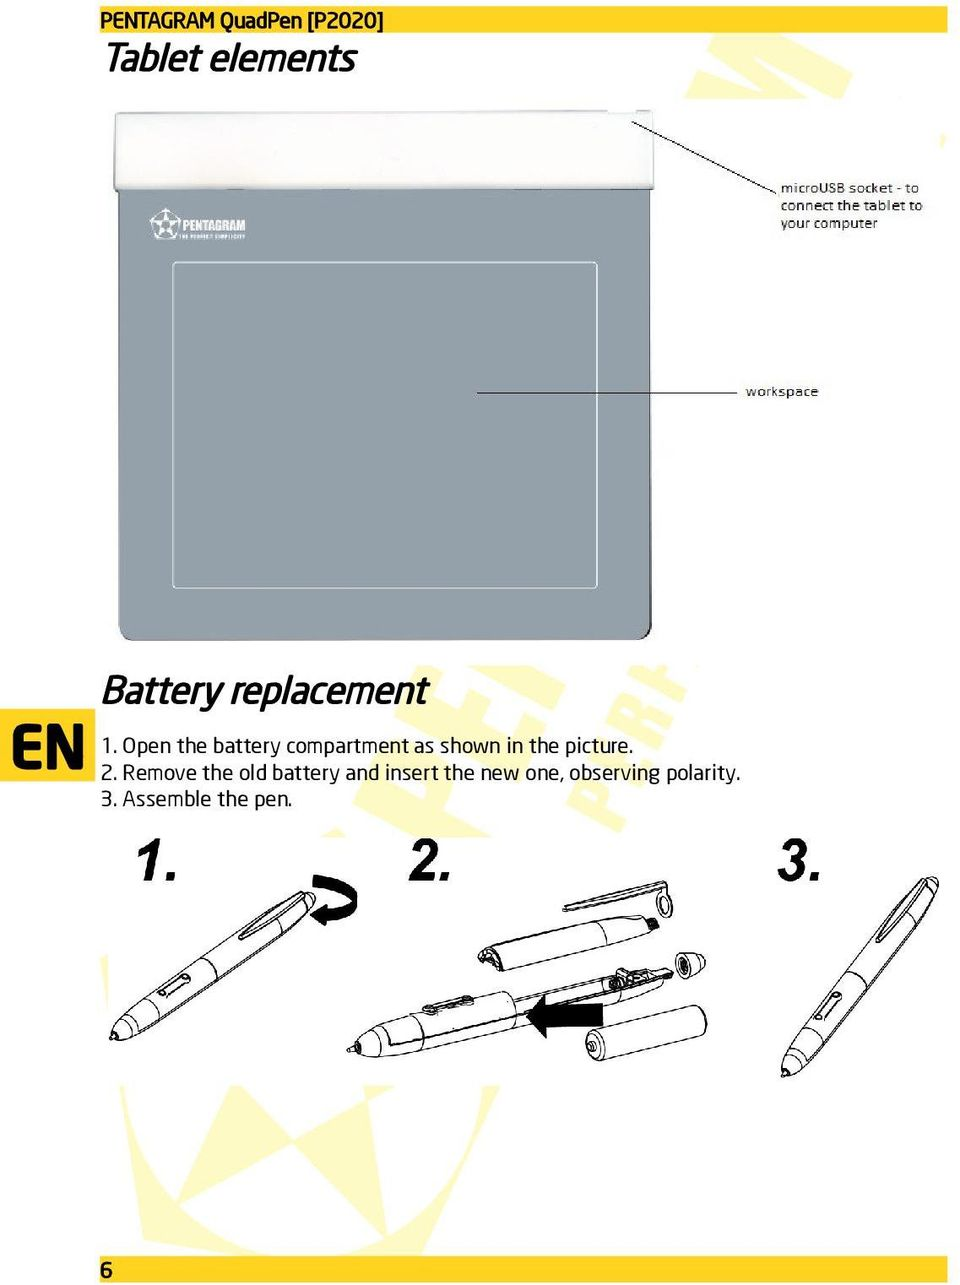 Open the battery compartment as shown in the picture.